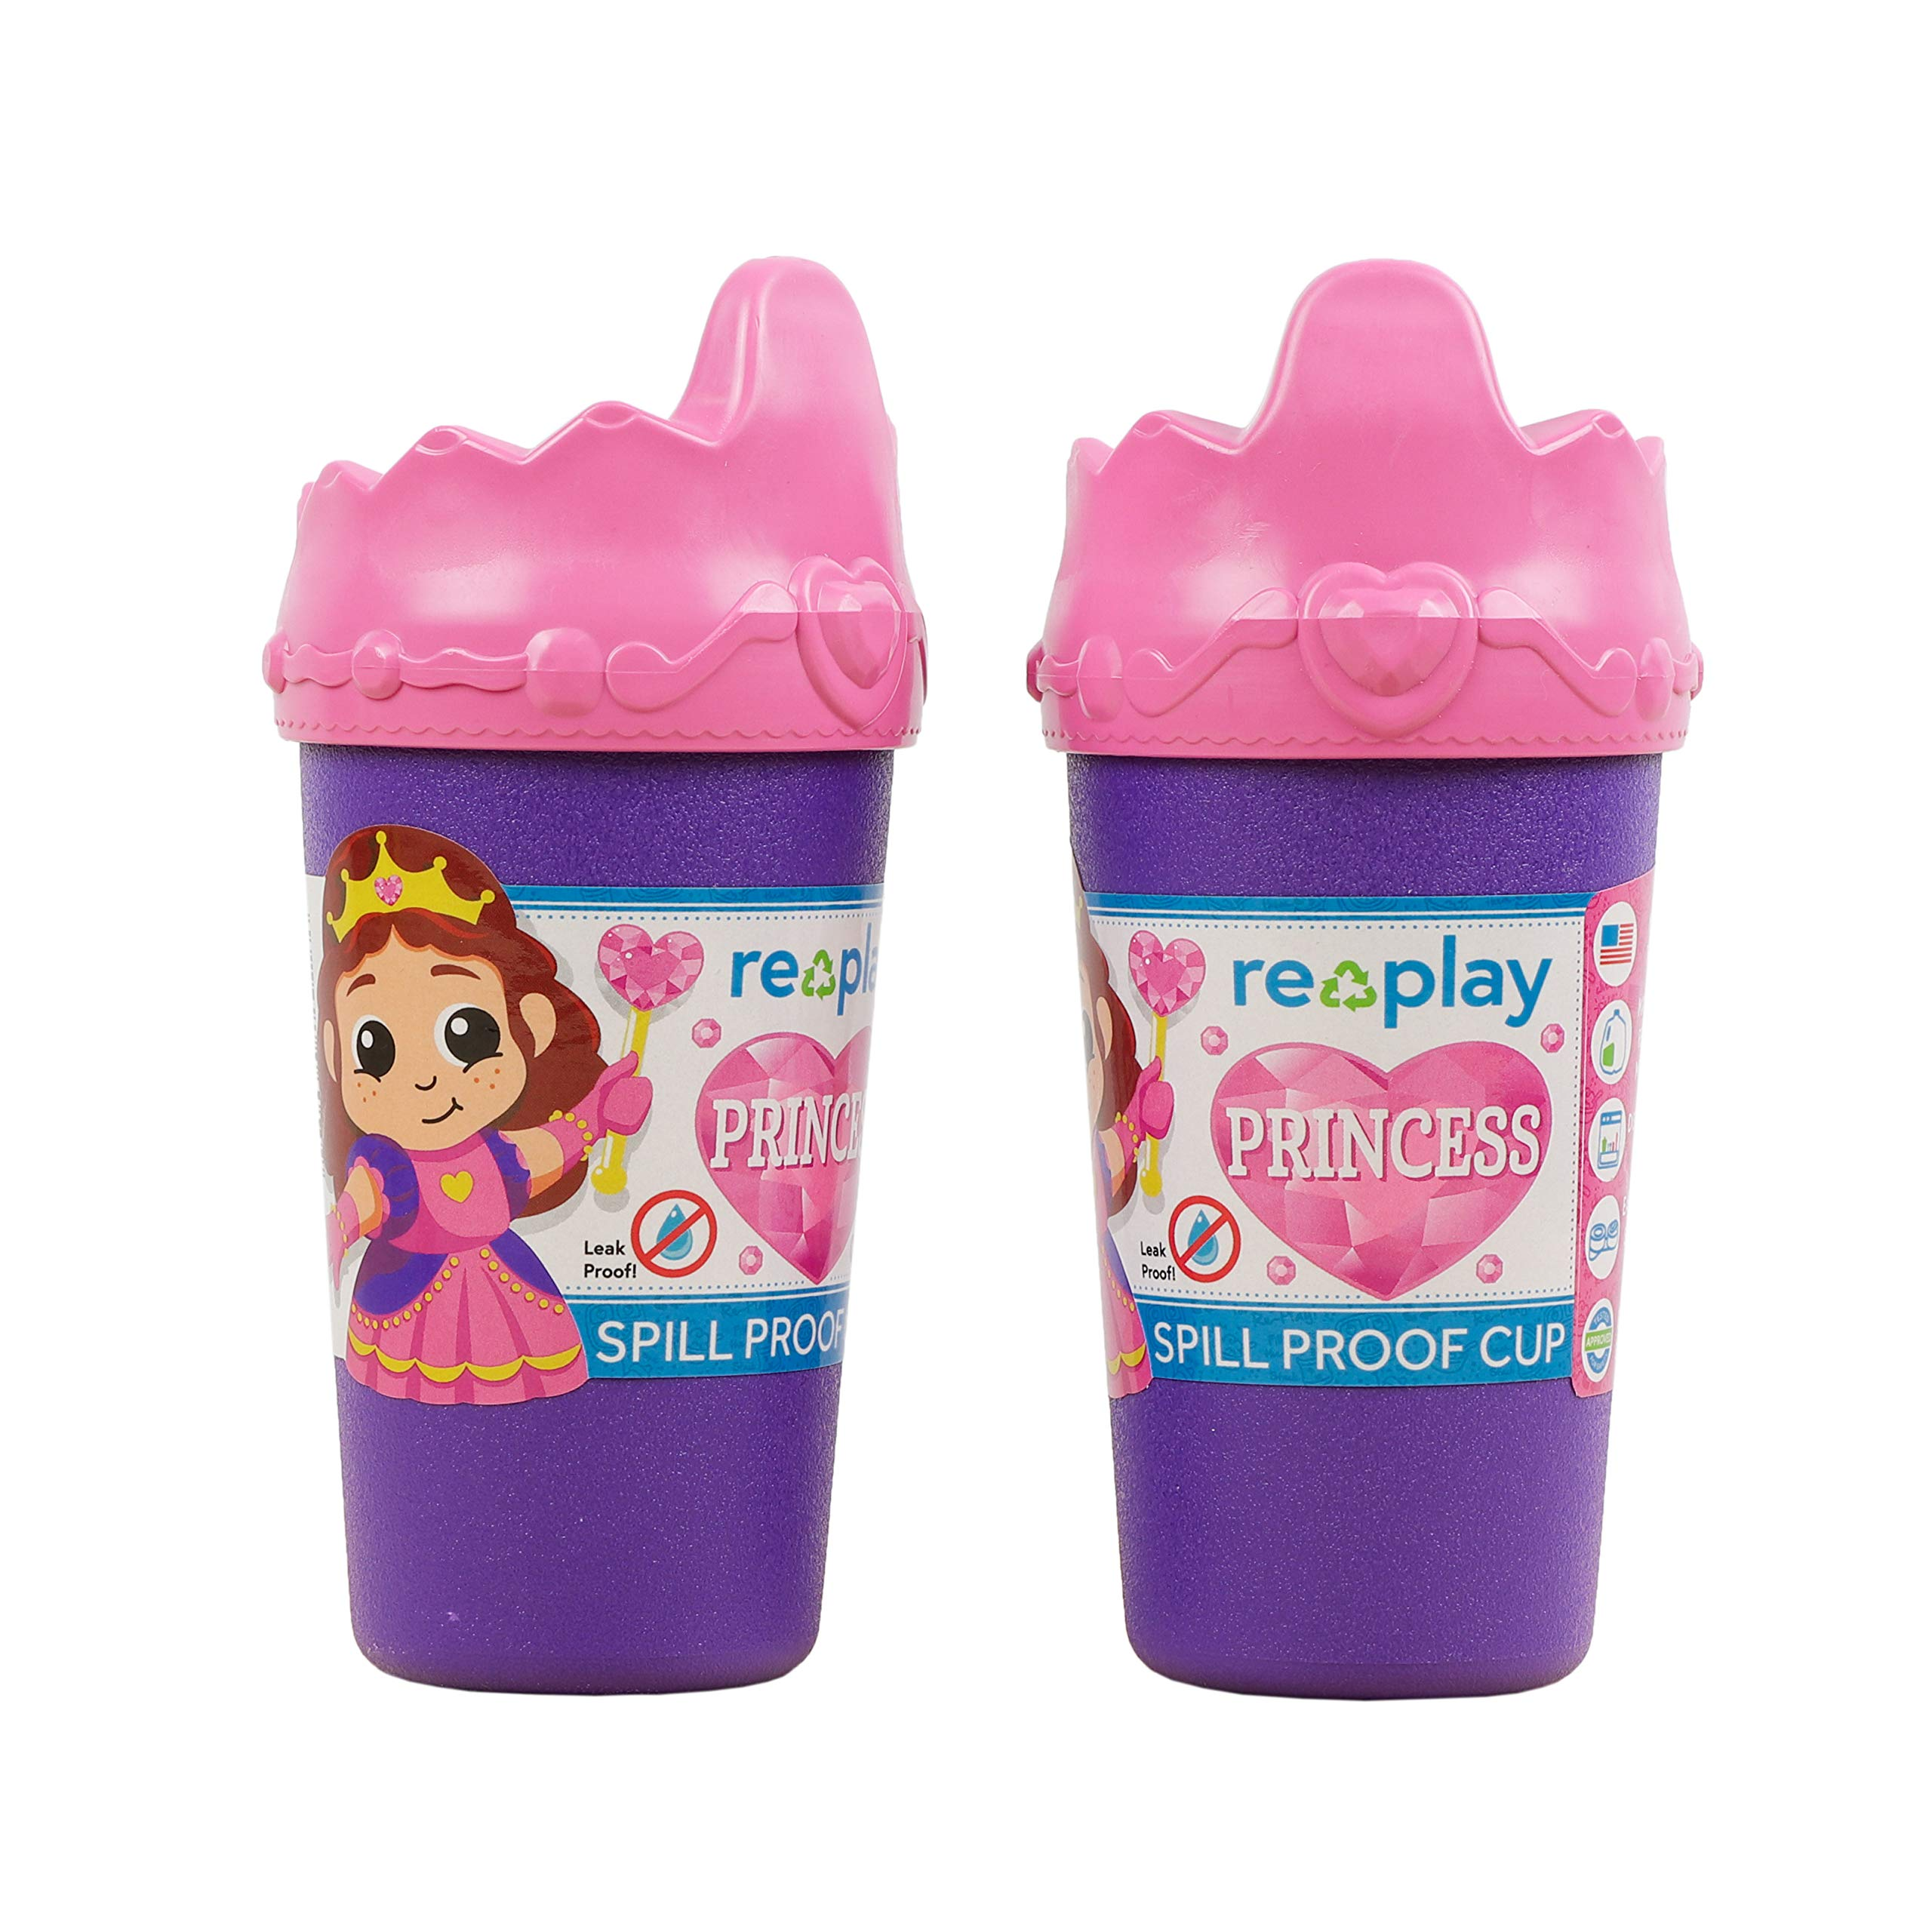 Re-Play Made in USA 2pk Princess No Spill Sippy Cups | 1 Piece Silicone Easy Clean Valve | Eco Friendly Heavyweight Recycled Milk Jugs are Virtually Indestructible | Specialty Crown Lid